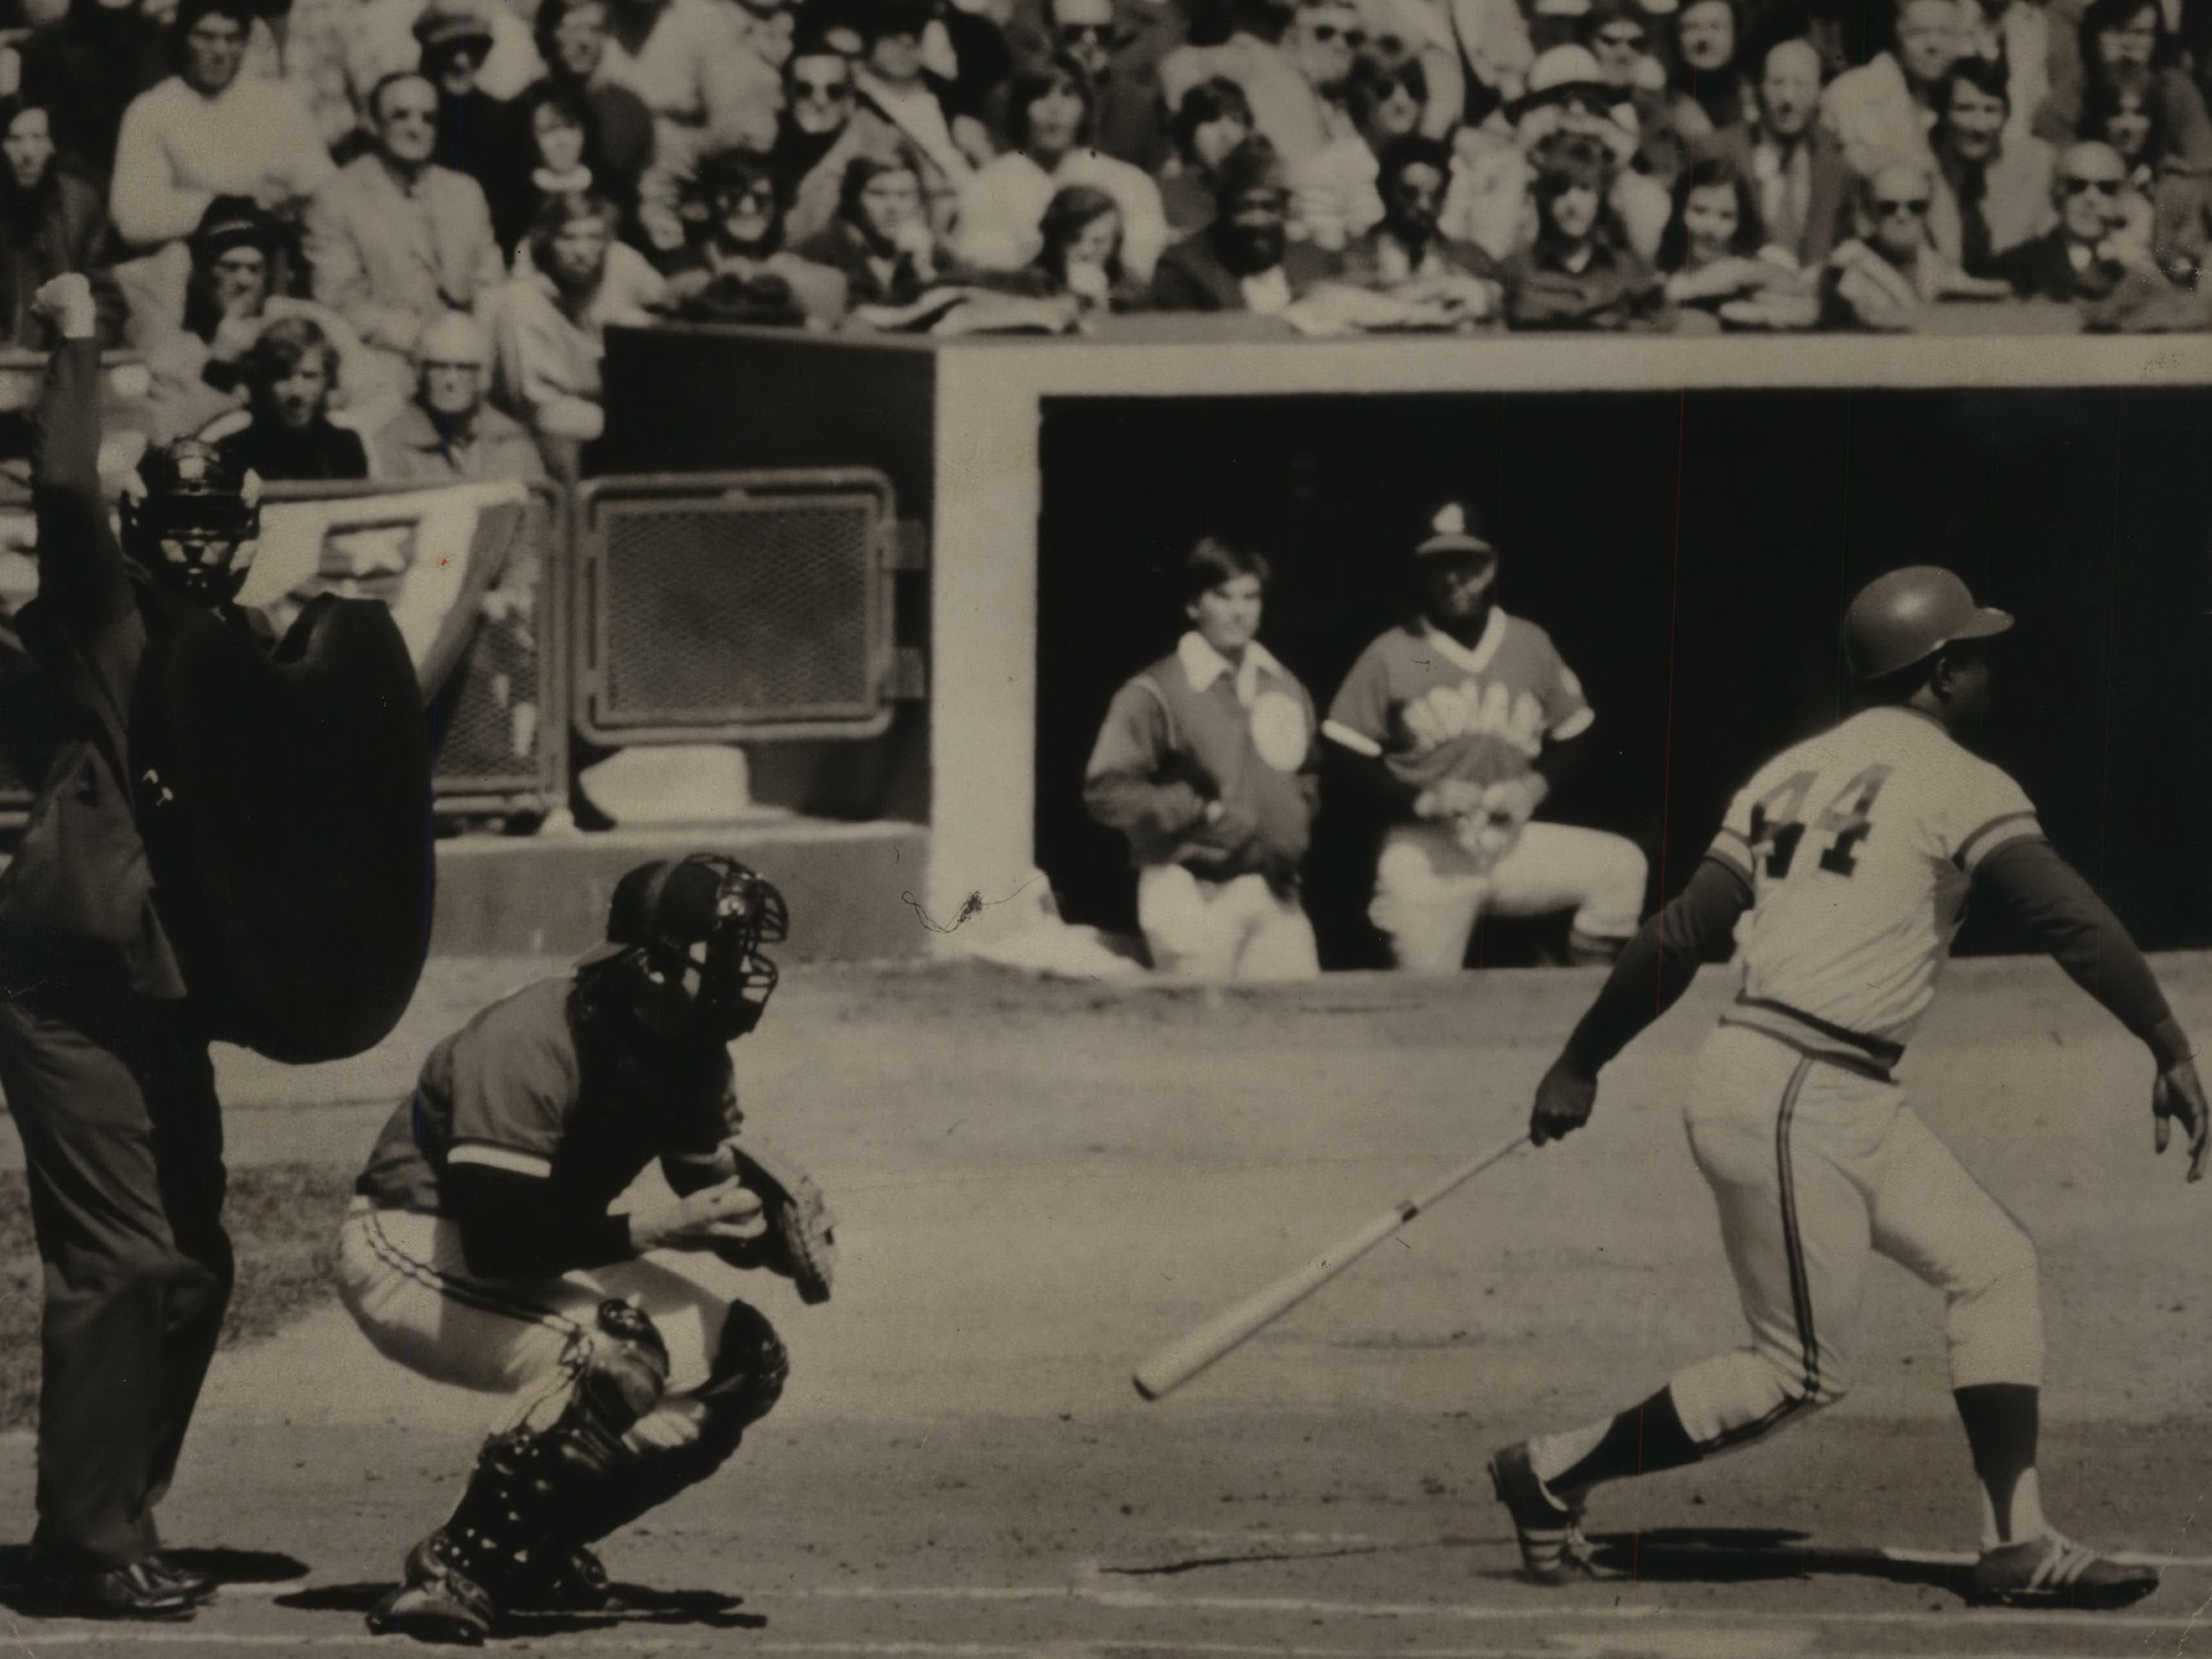 The eyes of Milwaukee and Wisconsin are on Hank Aaron as the home run king returned to the stadium in a Milwaukee uniform for the first time since 1965 for the Brewers' home opener on April 11, 1975. Aaron missed this pitch in his first time at-bat, but ended up with a walk. He singled later in the game, a 6-2 victory over the Cleveland Indians. This photo was published on the front page of the April 12, 1975, Milwaukee Sentinel.